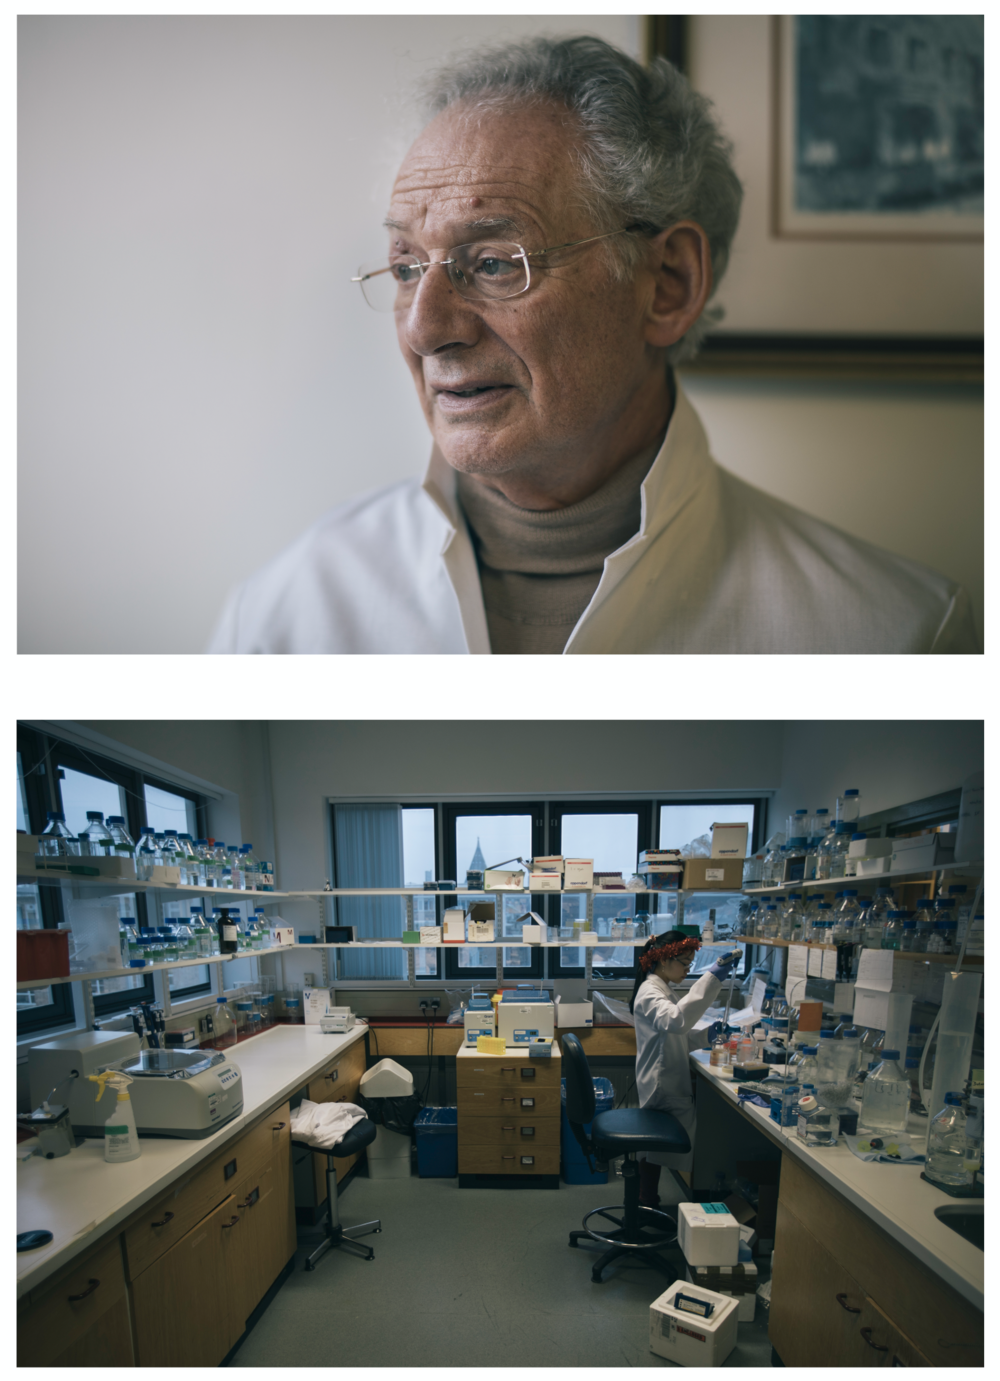 Professor Raymond Dwek (top) and a research lab in the Glycobiology Institute (bottom).